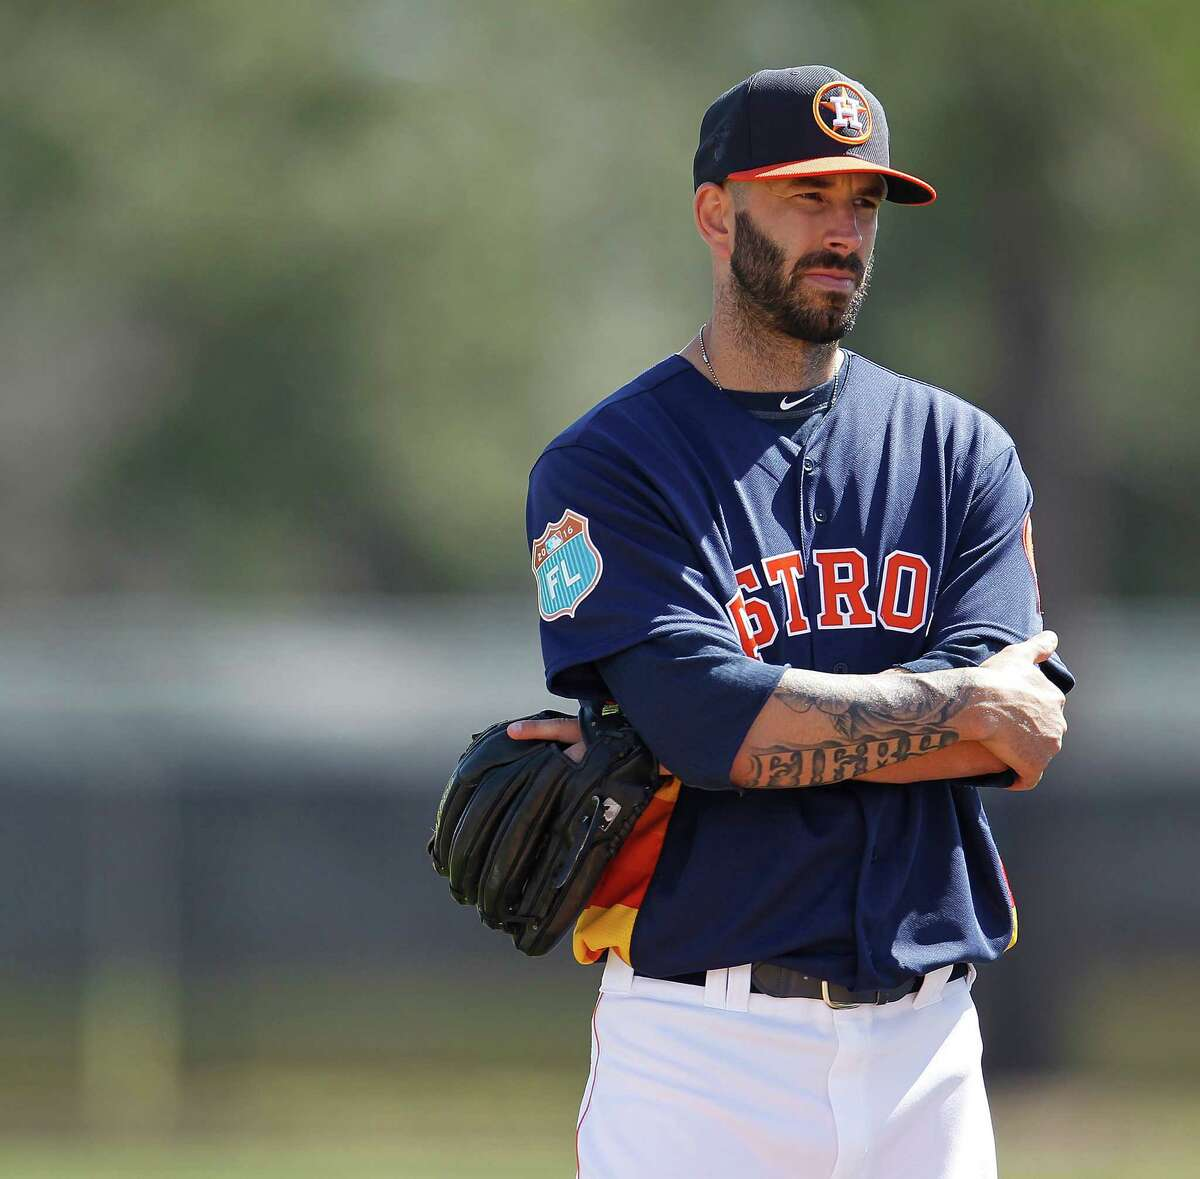 Houston Astros pitcher Mike Fiers during the first workout for Houston Astros pitchers and catchers for spring training in Kissimmee, Florida, Friday, Feb. 19, 2016.